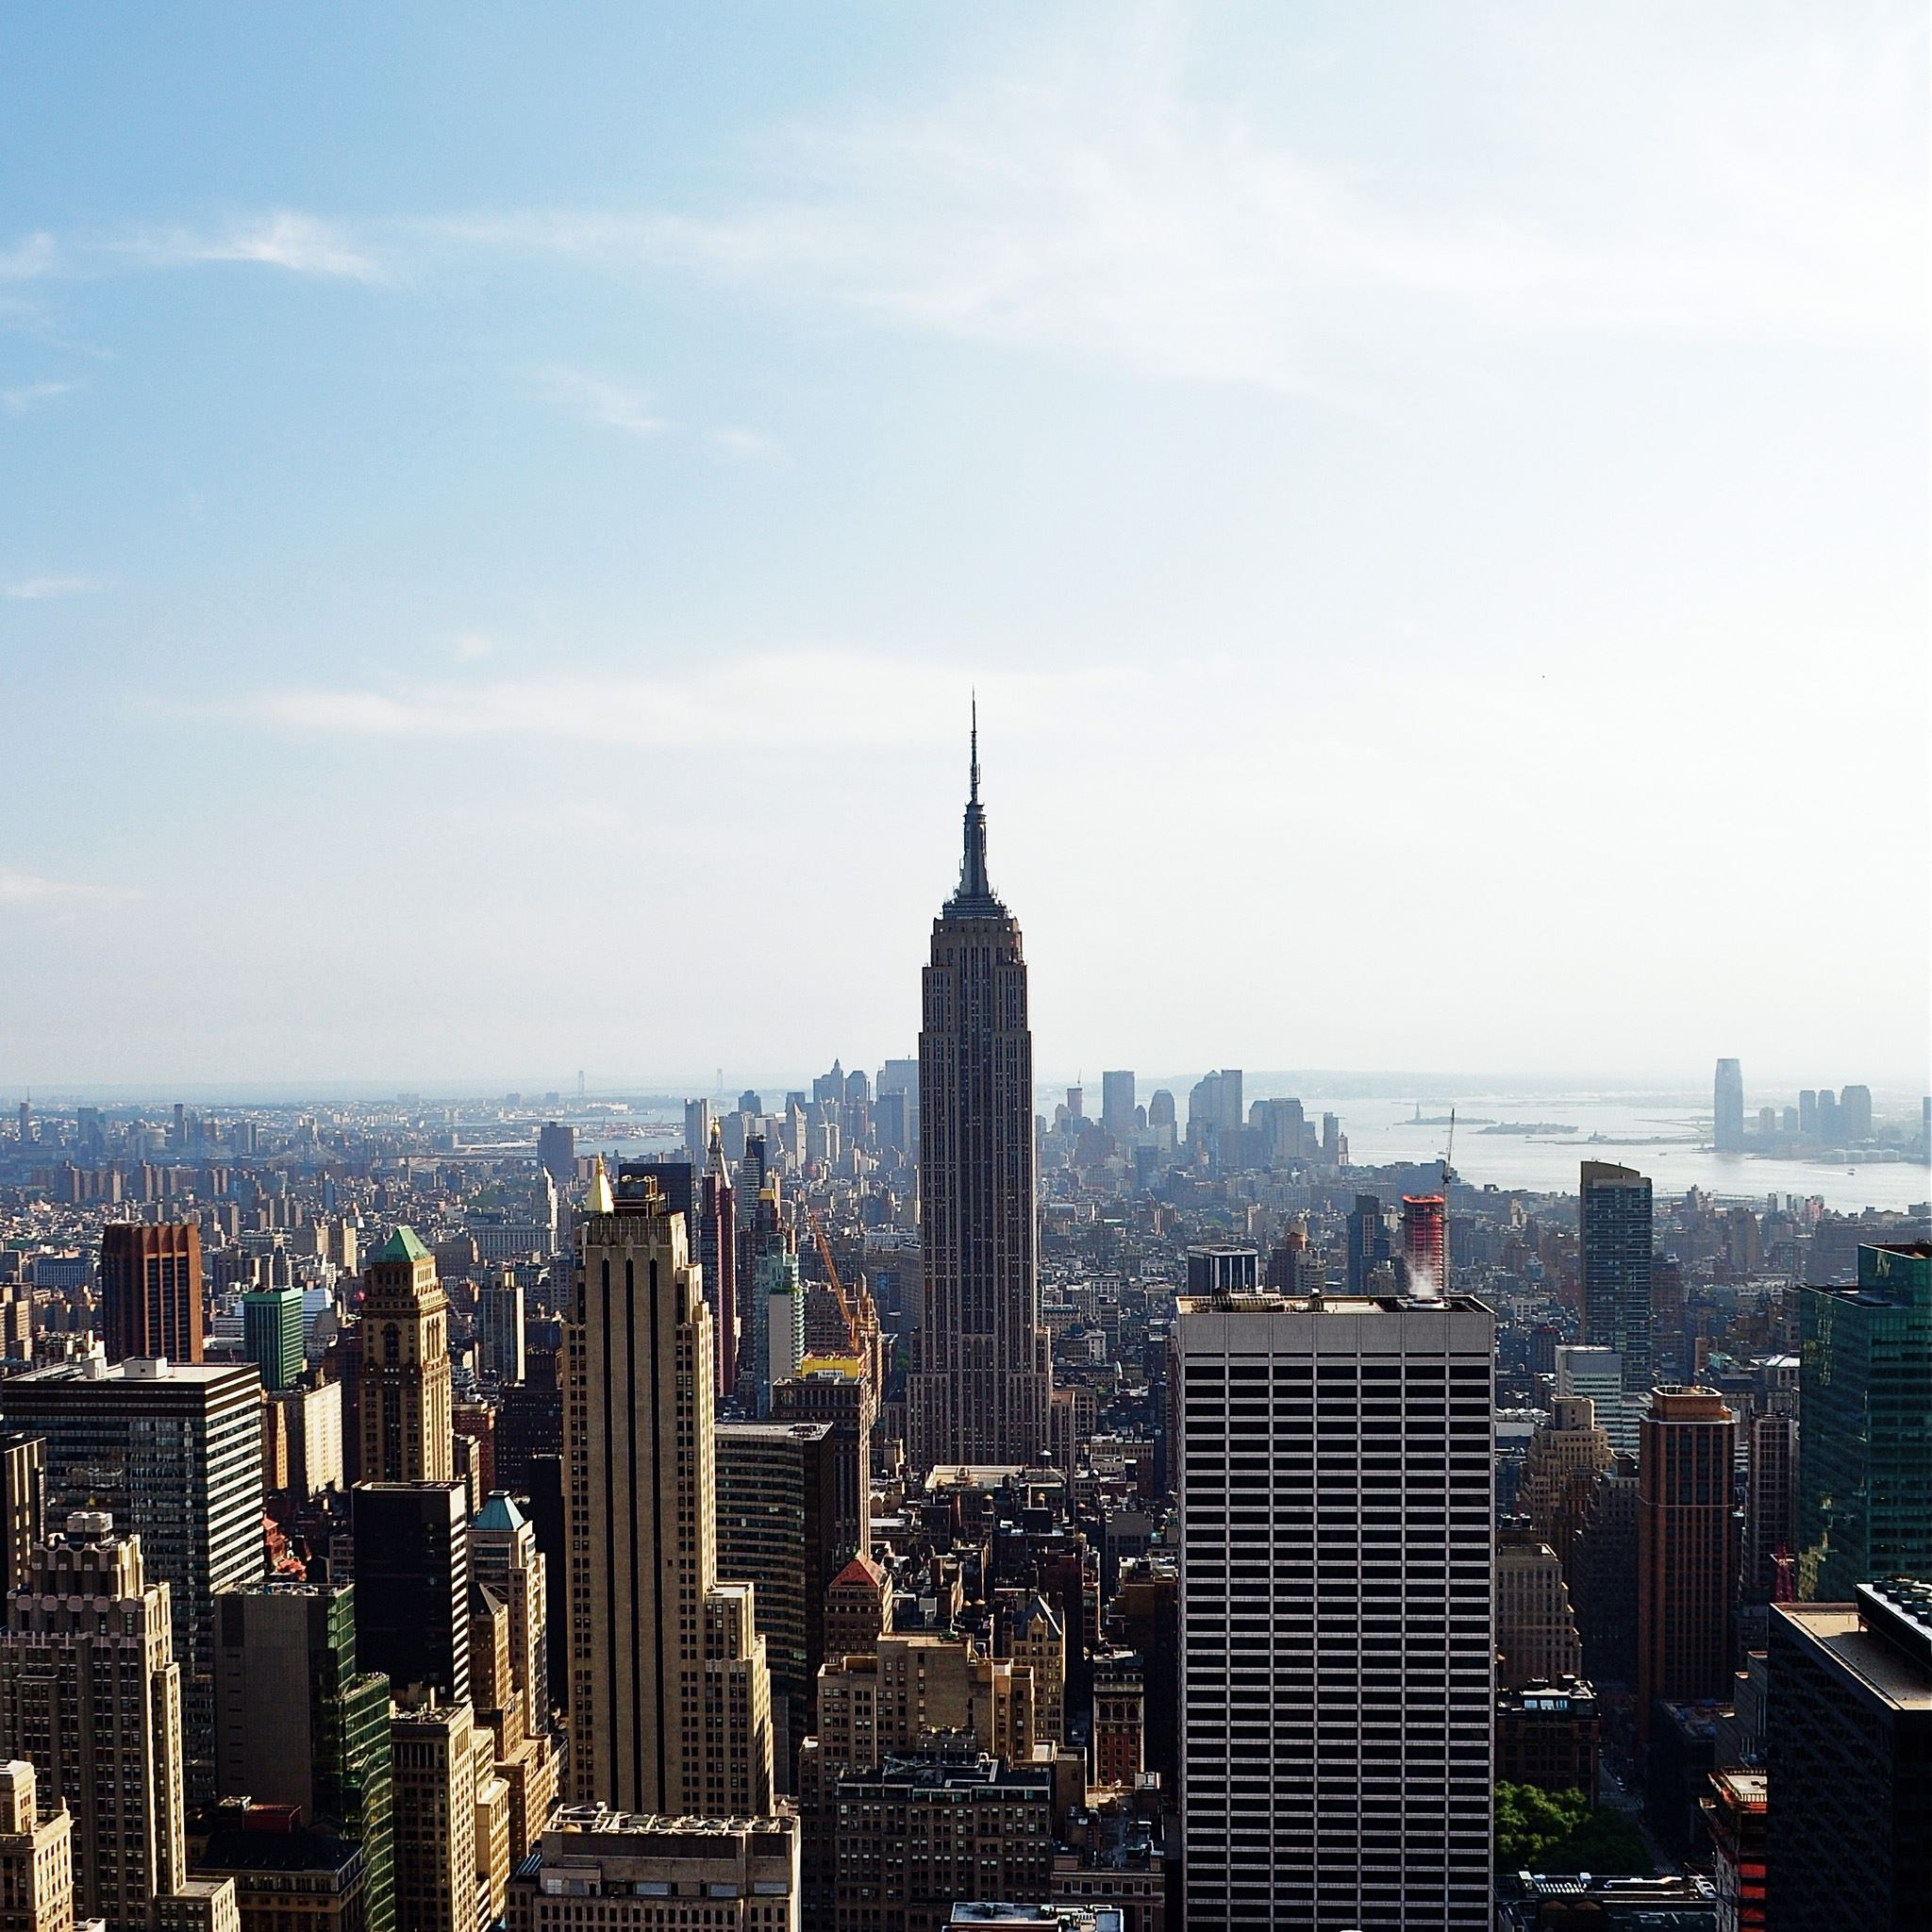 Wallpaper Iphone New York: Empire State Building New York IPad Air Wallpaper Download